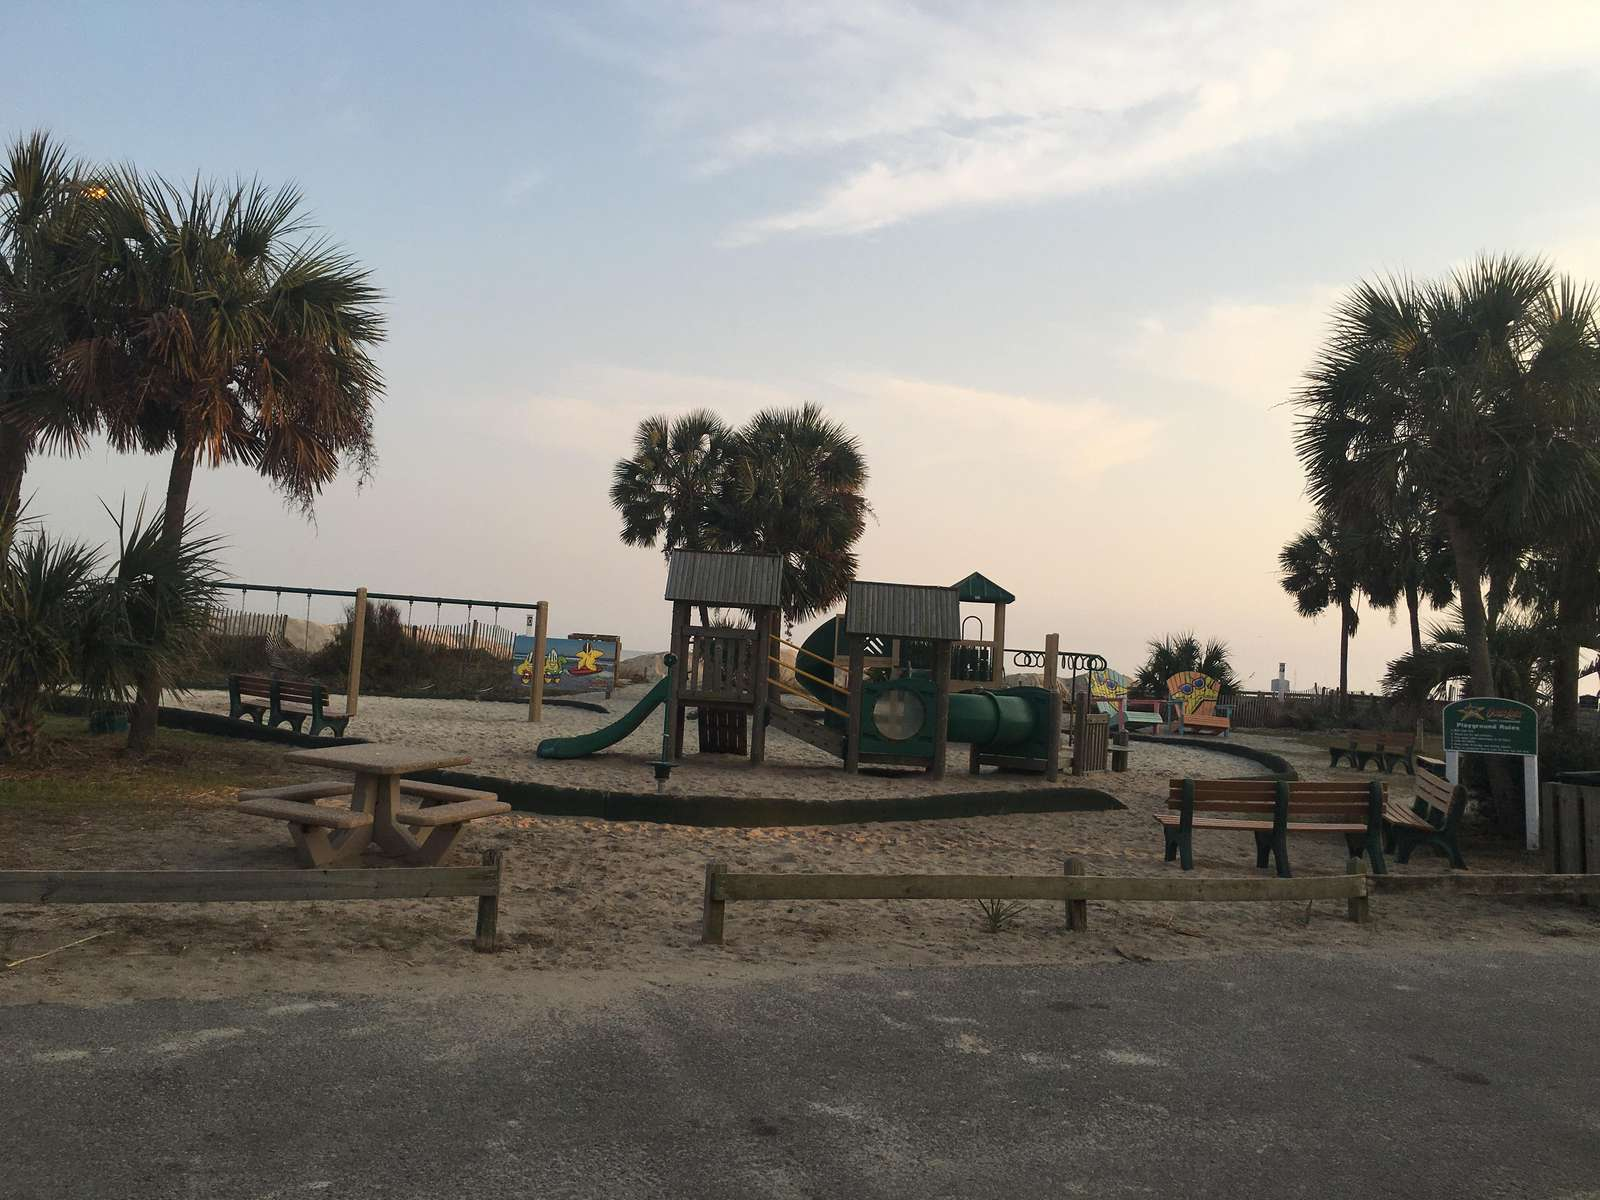 2nd of the two playgrounds